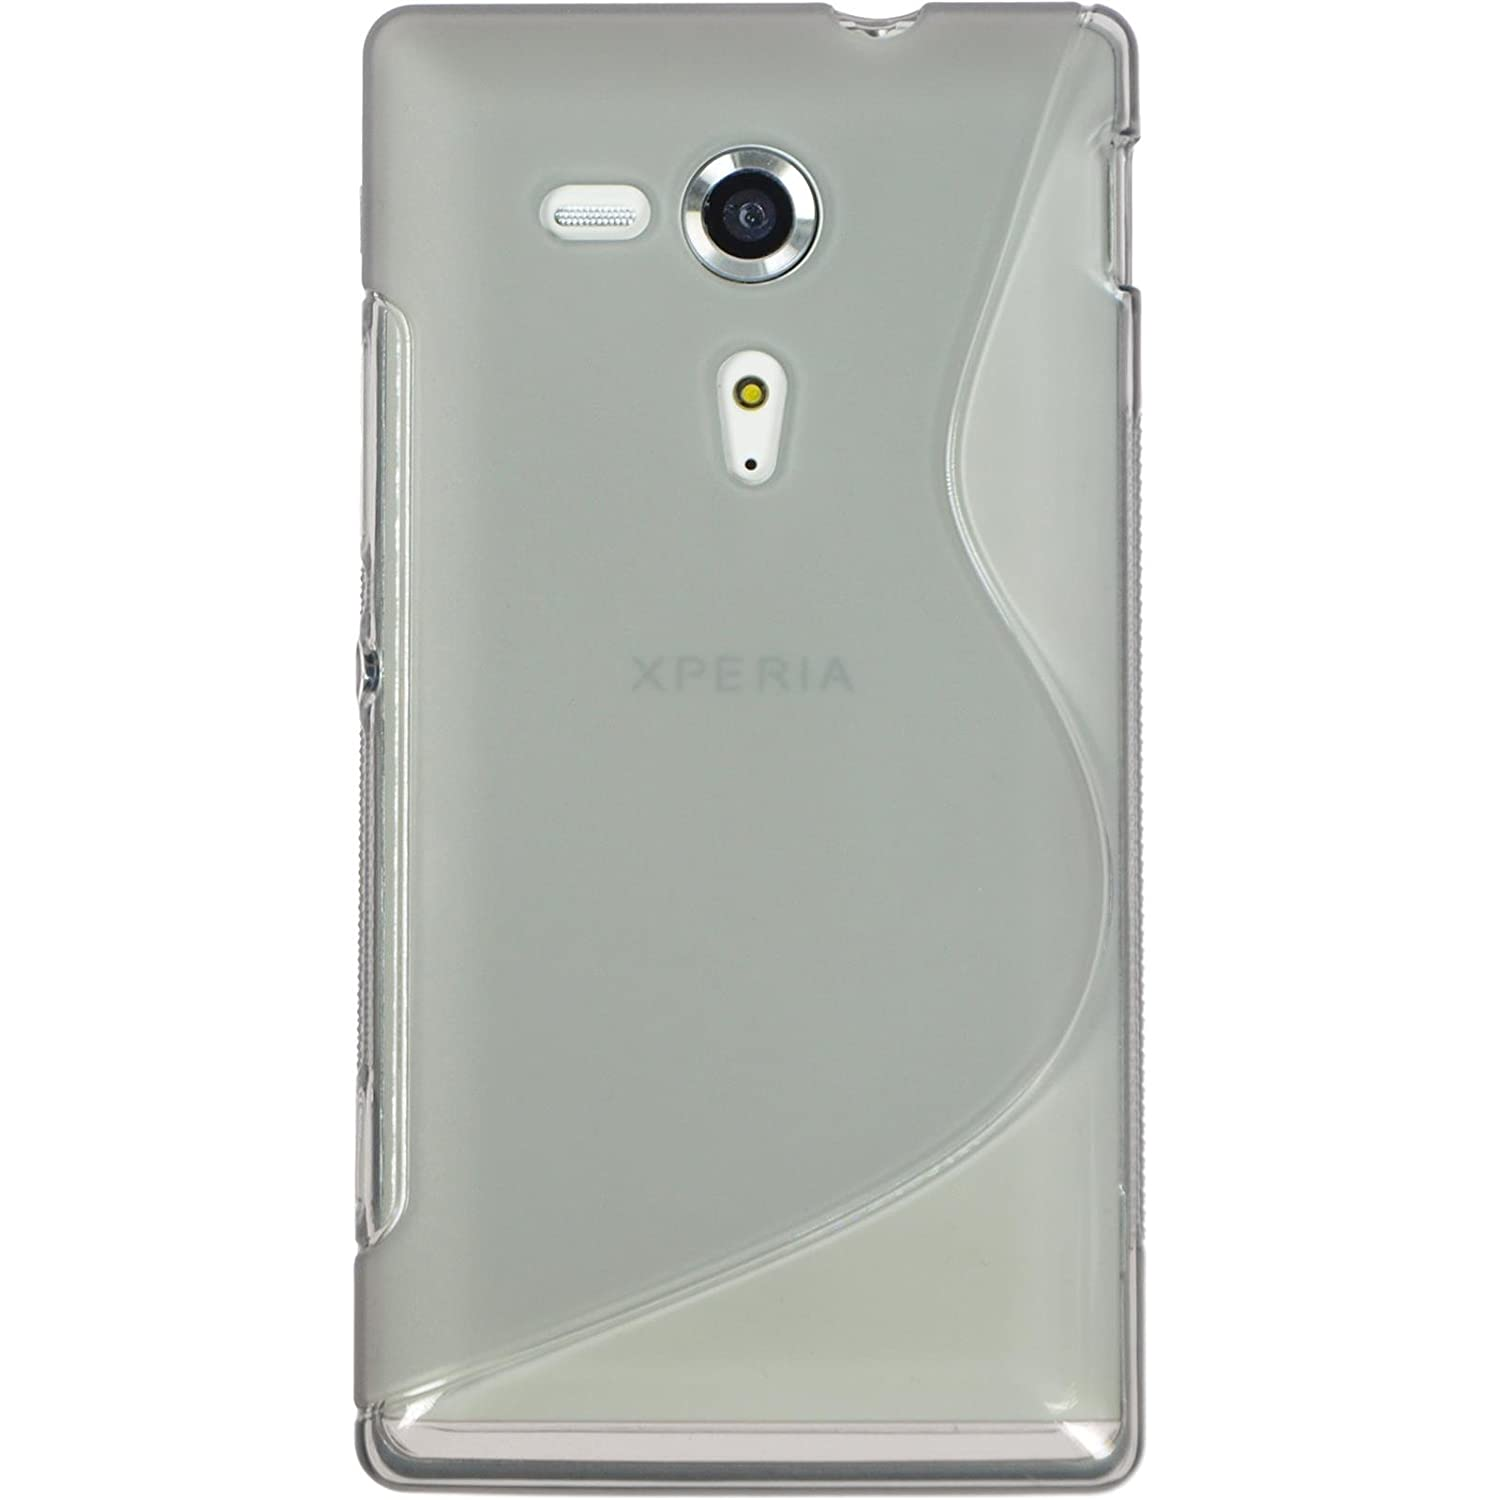 Amazon Silicone Case for Sony Xperia SP S Style gray Cover PhoneNatic protective foils Cell Phones & Accessories